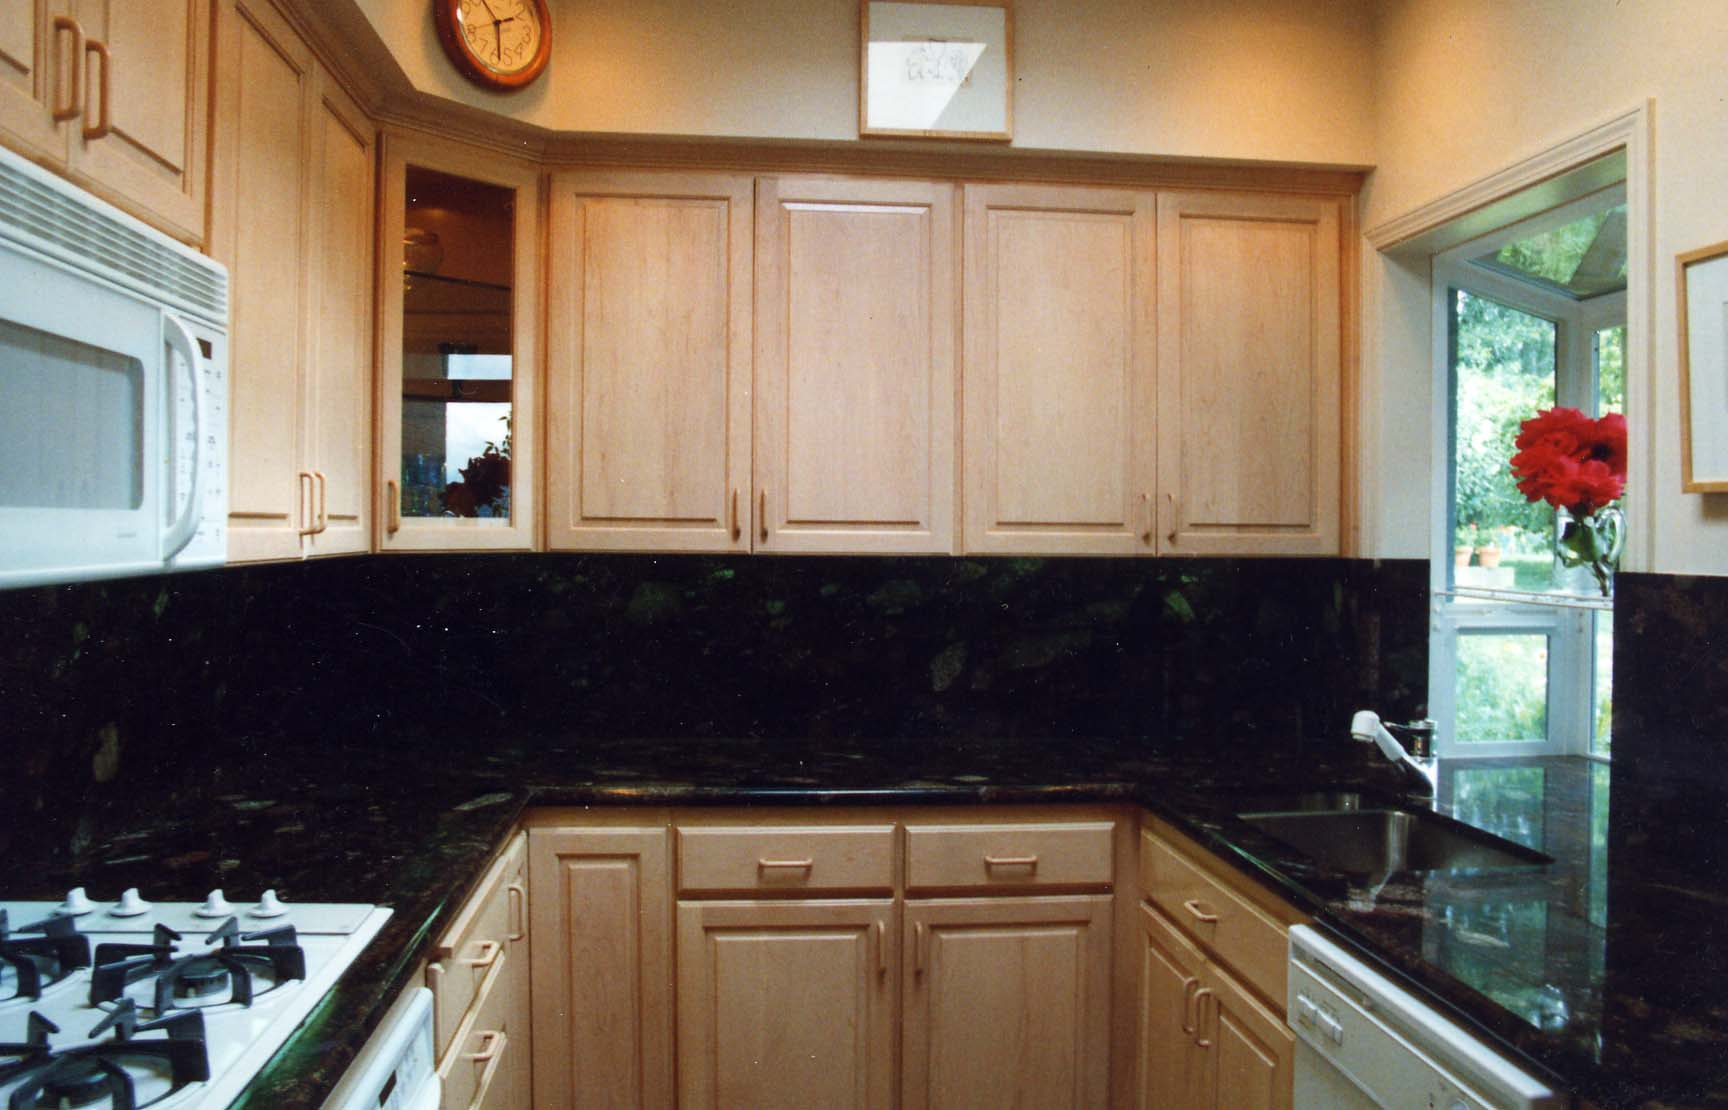 kitchenphotos kitchens with maple cabinets Gainesville Centreville Natural maple kitchen cabinets